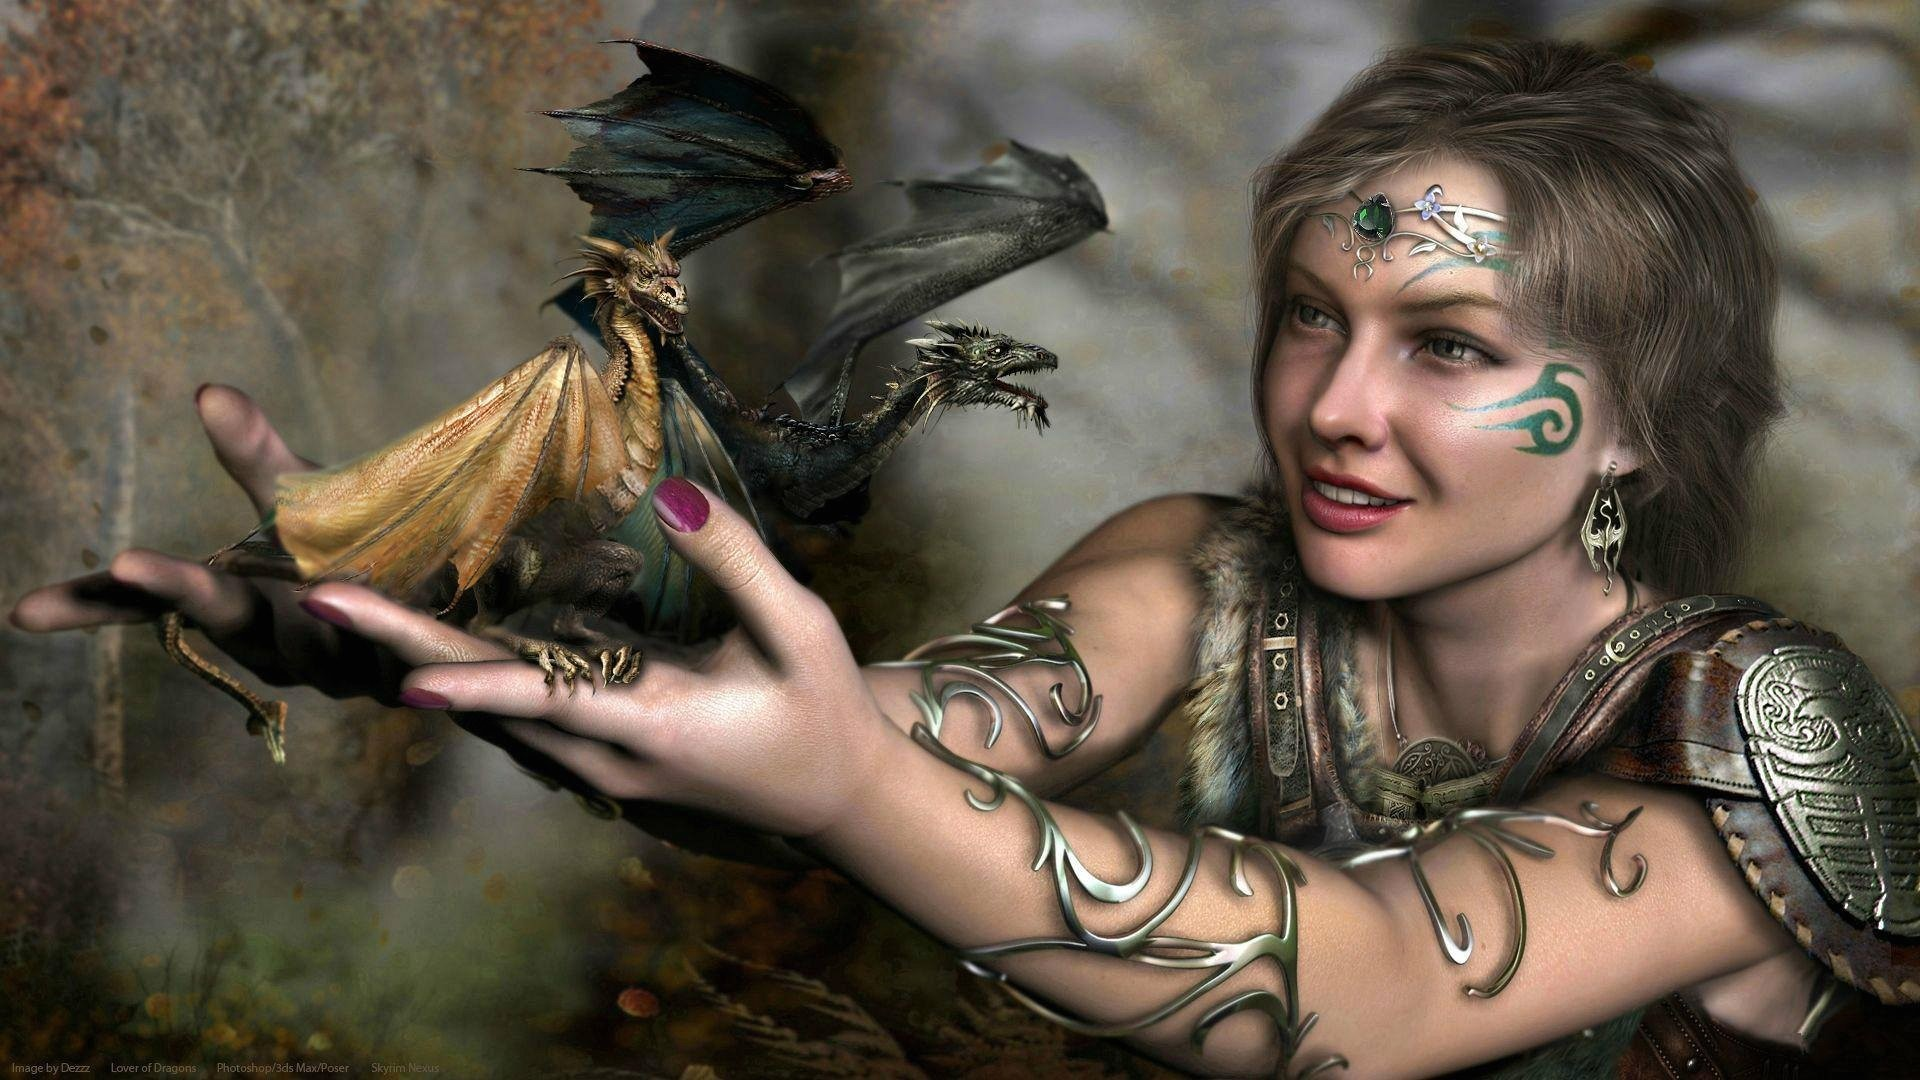 1920x1080 Fantasy Girl With Dragon Tattoos HD Wallpaper. Search more high